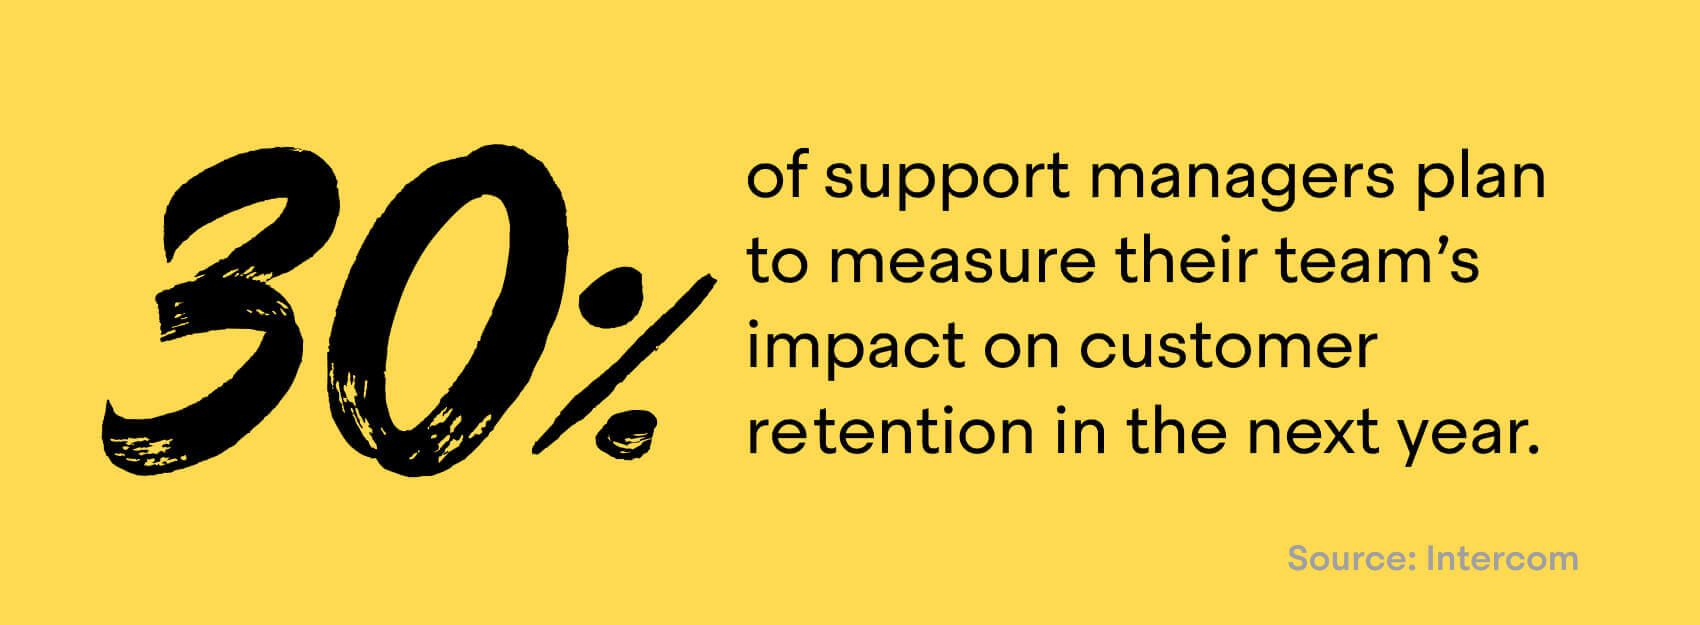 30% of support managers plan to measure their team's impact on customer retention in the coming year